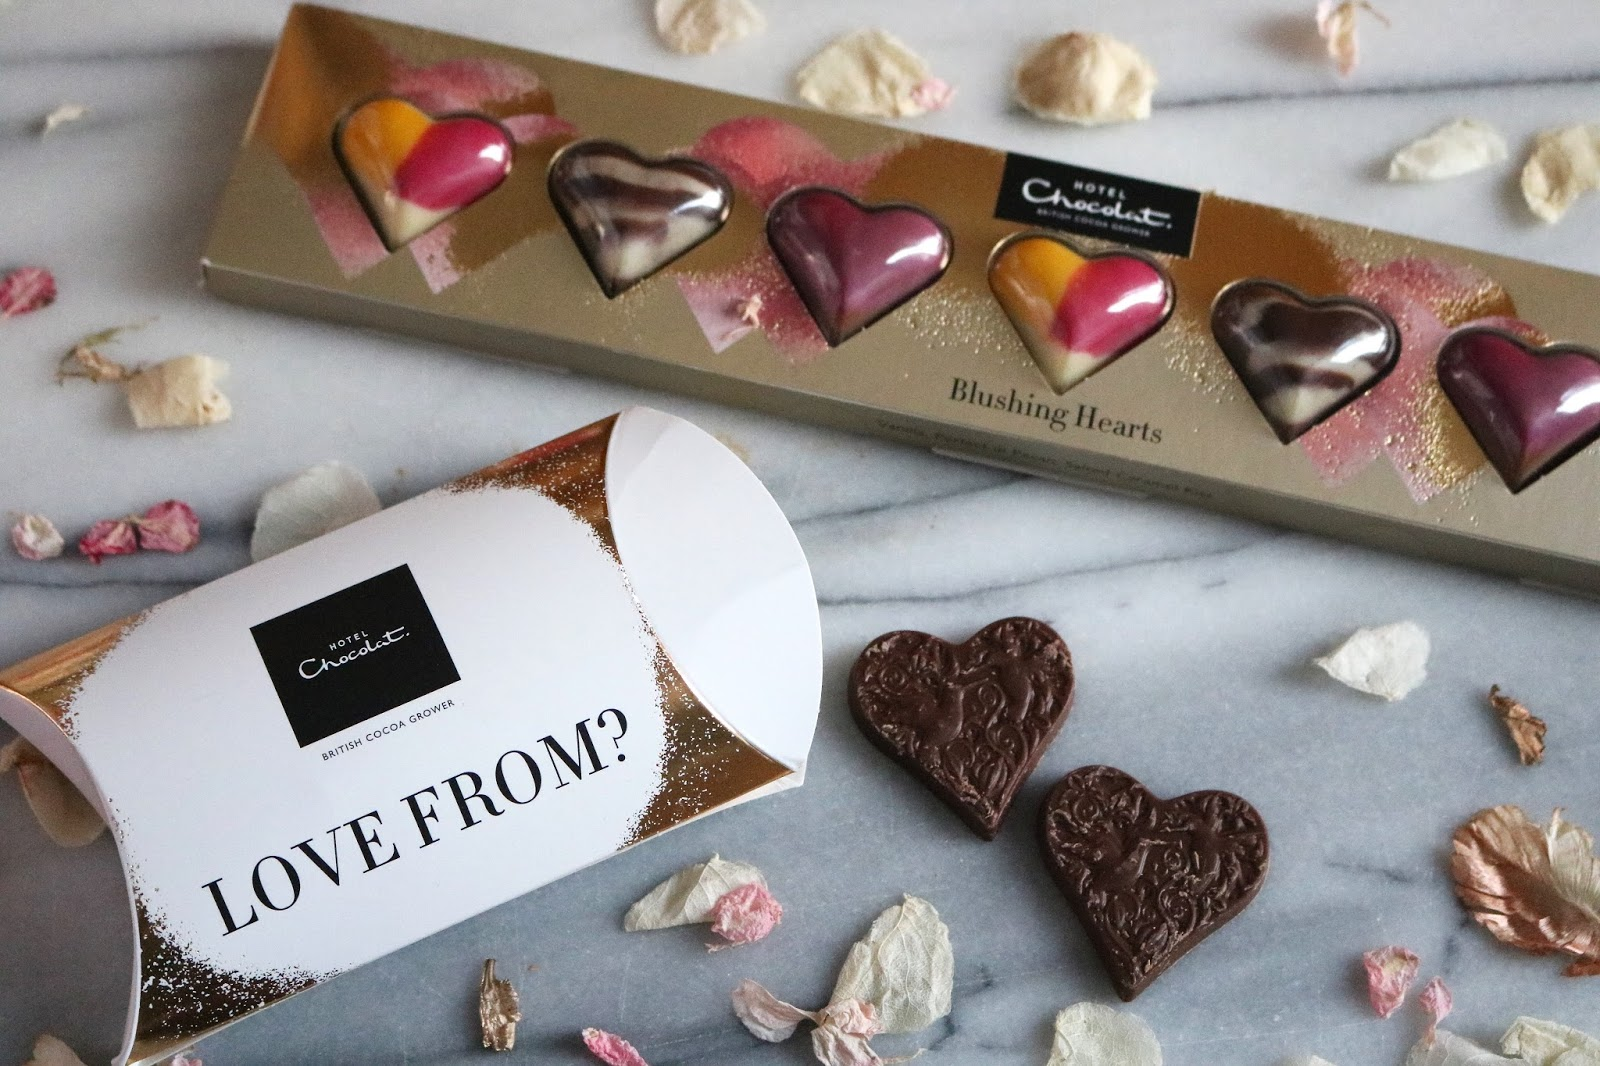 hotel chocolat blushing hearts filled chocolates and love solid milk chocolate hearts